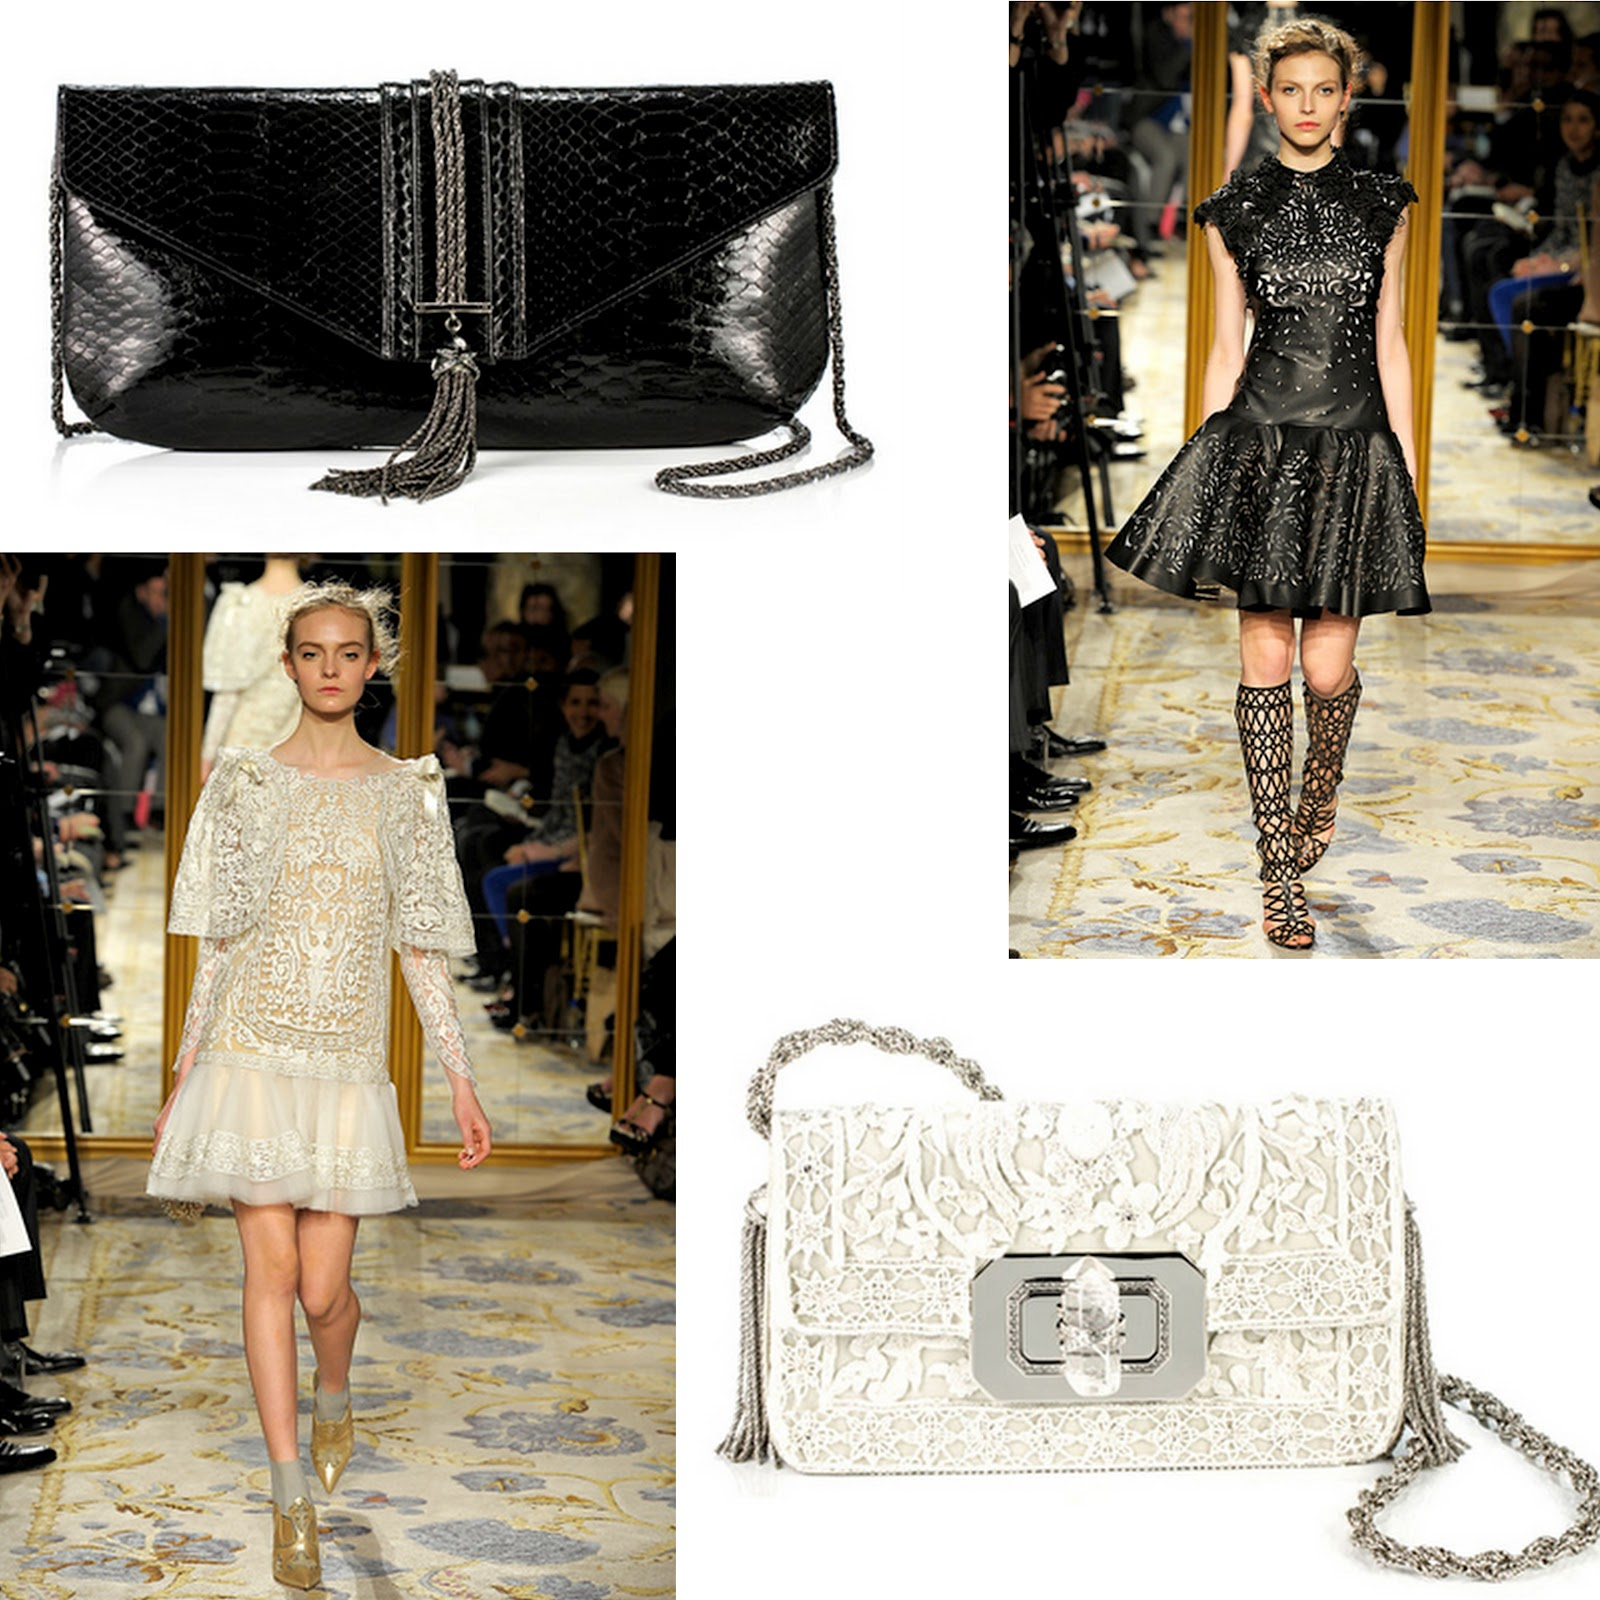 70a109fd76c3 Each ornate piece has been designed to echo the style and luxurious fabrics  of the different ensembles. Celestial couture and clutch bags...this is a  match ...